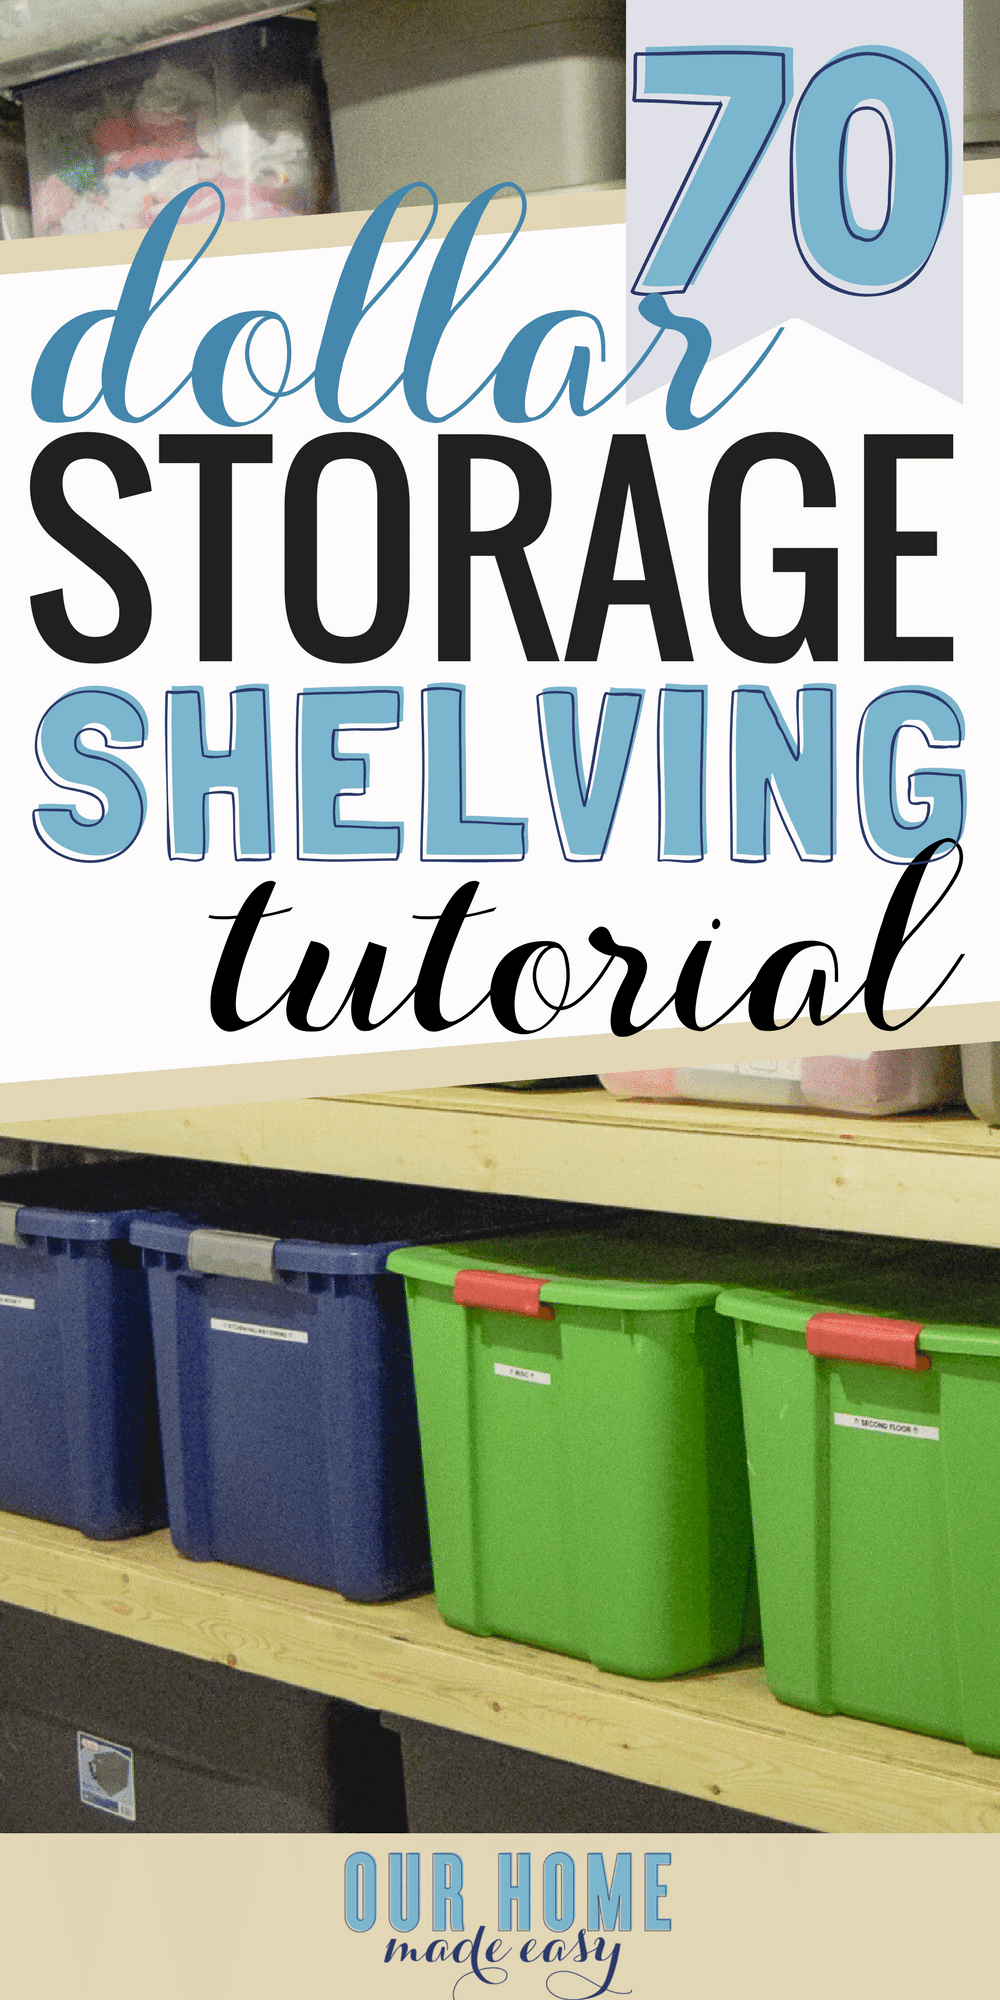 Organize your totes with this DIY storage shelving! And make them for a budget price. Click to see the tutorial for building your own tote shelves!